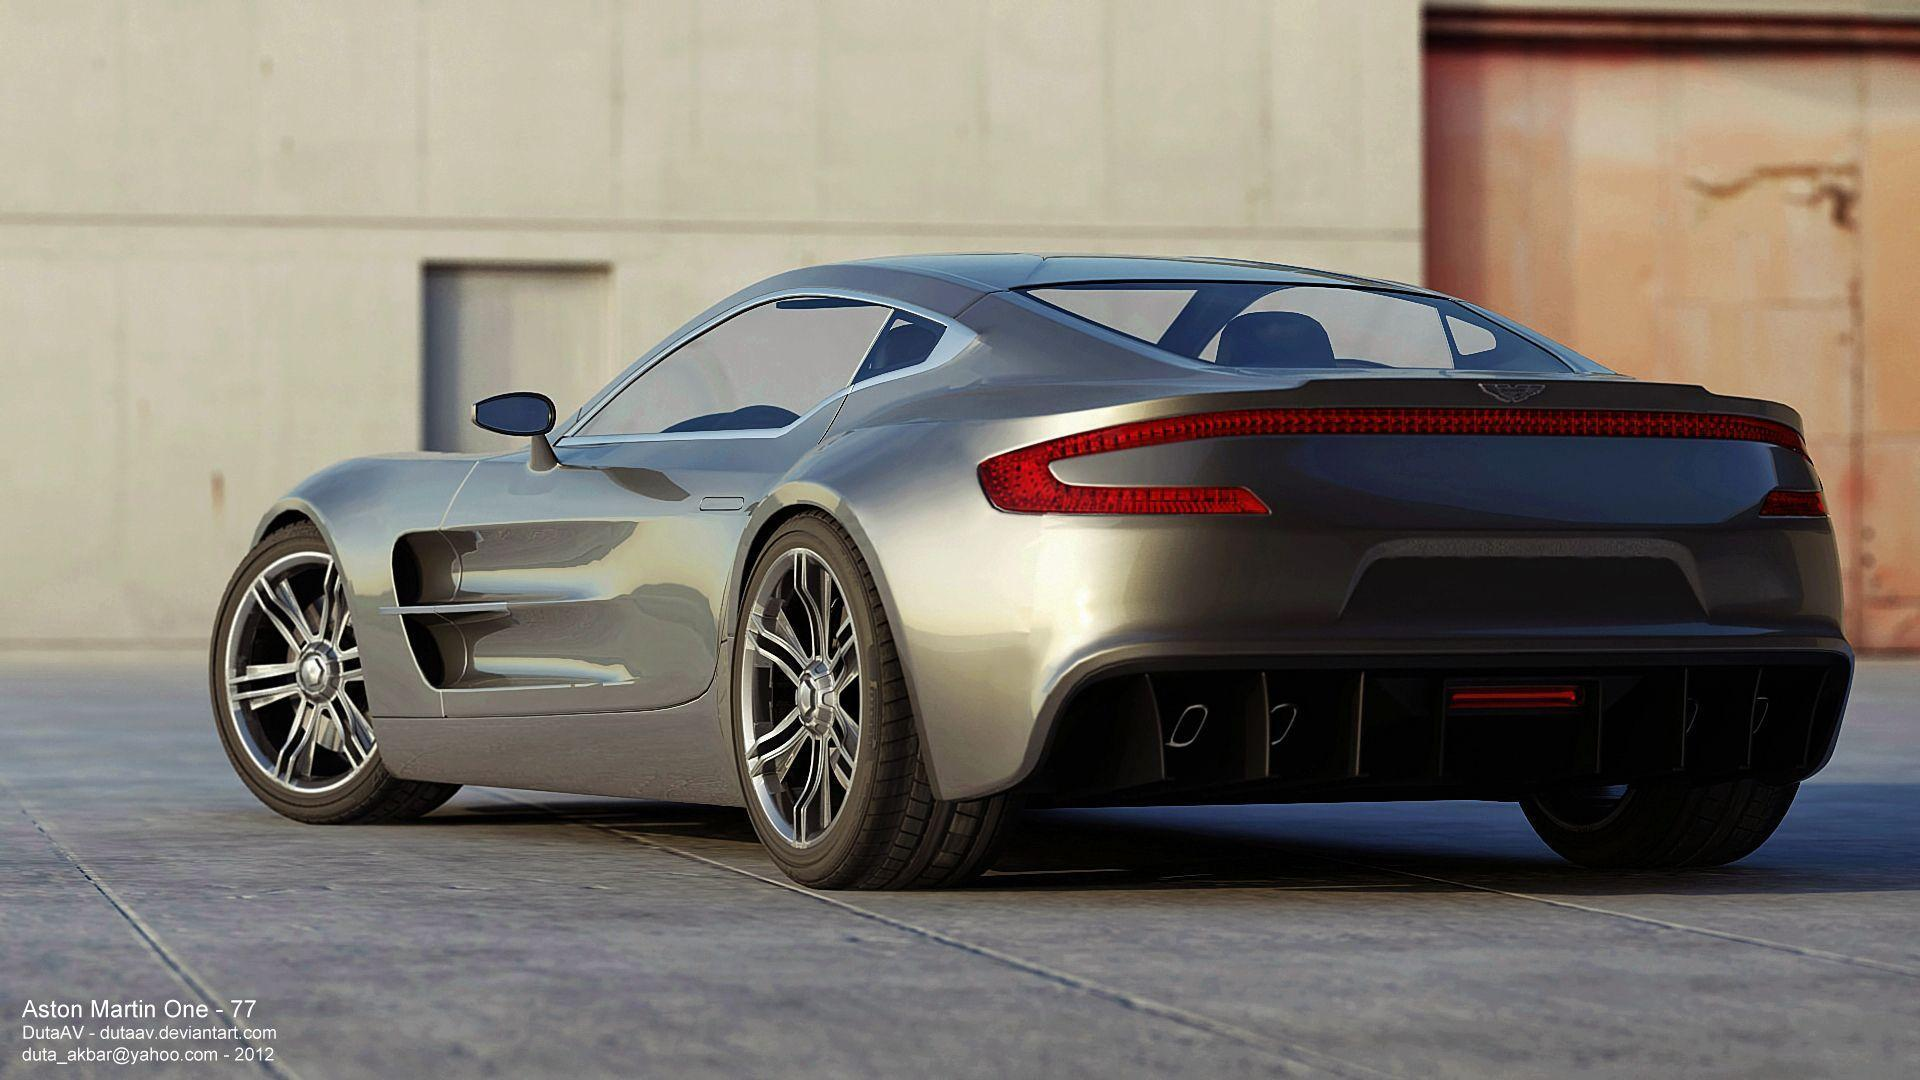 Hd Wallpapers Of Aston Martin One 77 | Images Guru